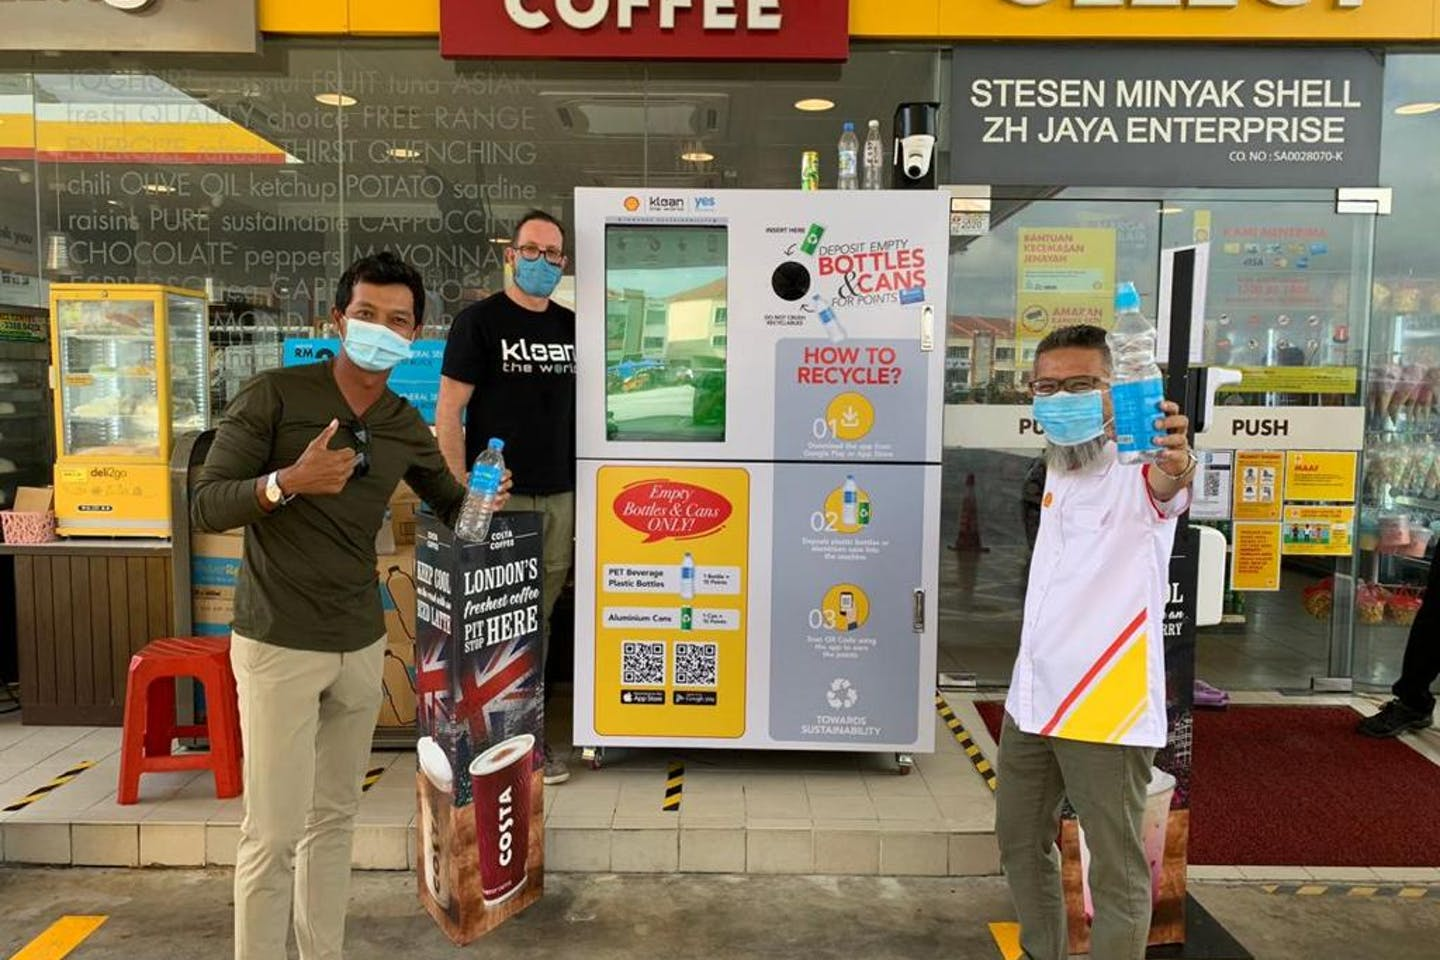 Klean's reverse vending machines are scaling up their plastic waste movement across Southeast Asia